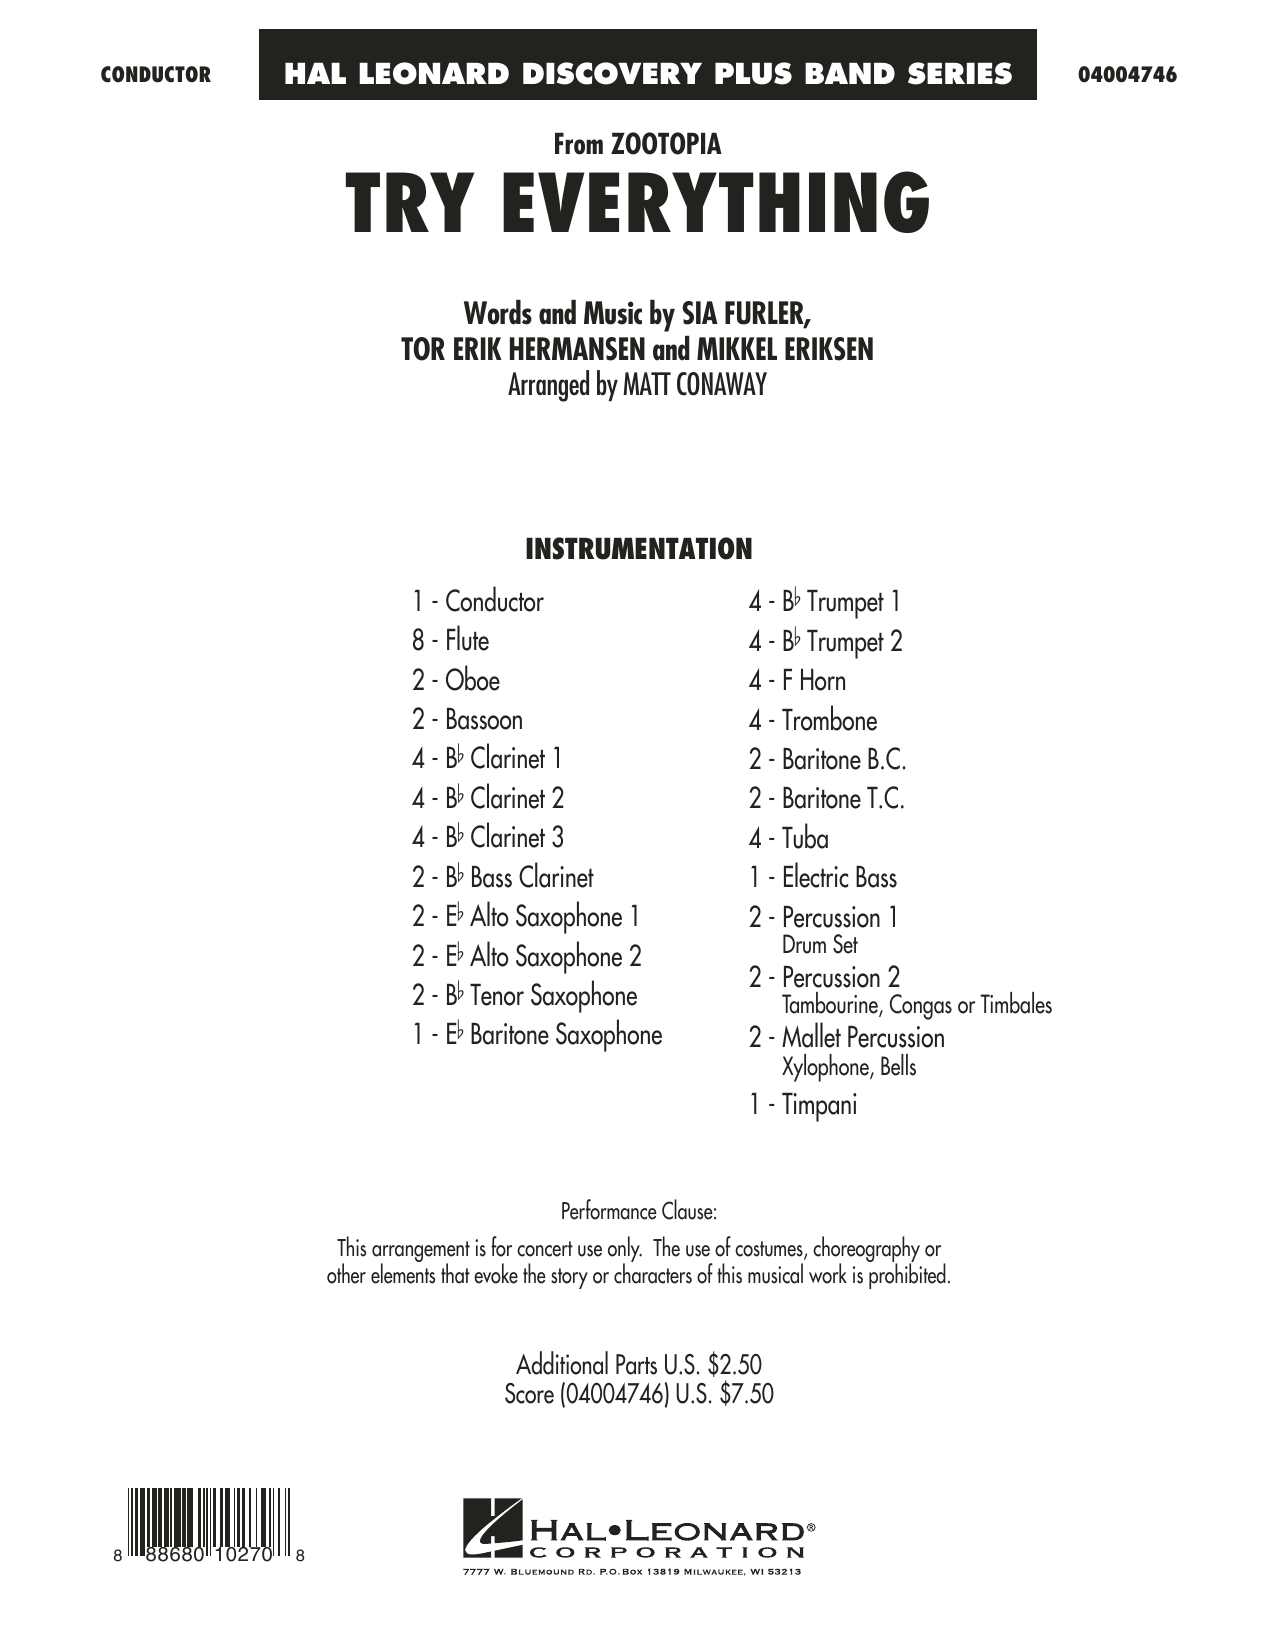 Try Everything (from Zootopia) (COMPLETE) sheet music for concert band by Matt Conaway, Mikkel Eriksen, Shakira, Sia Furler and Tor Erik Hermansen. Score Image Preview.